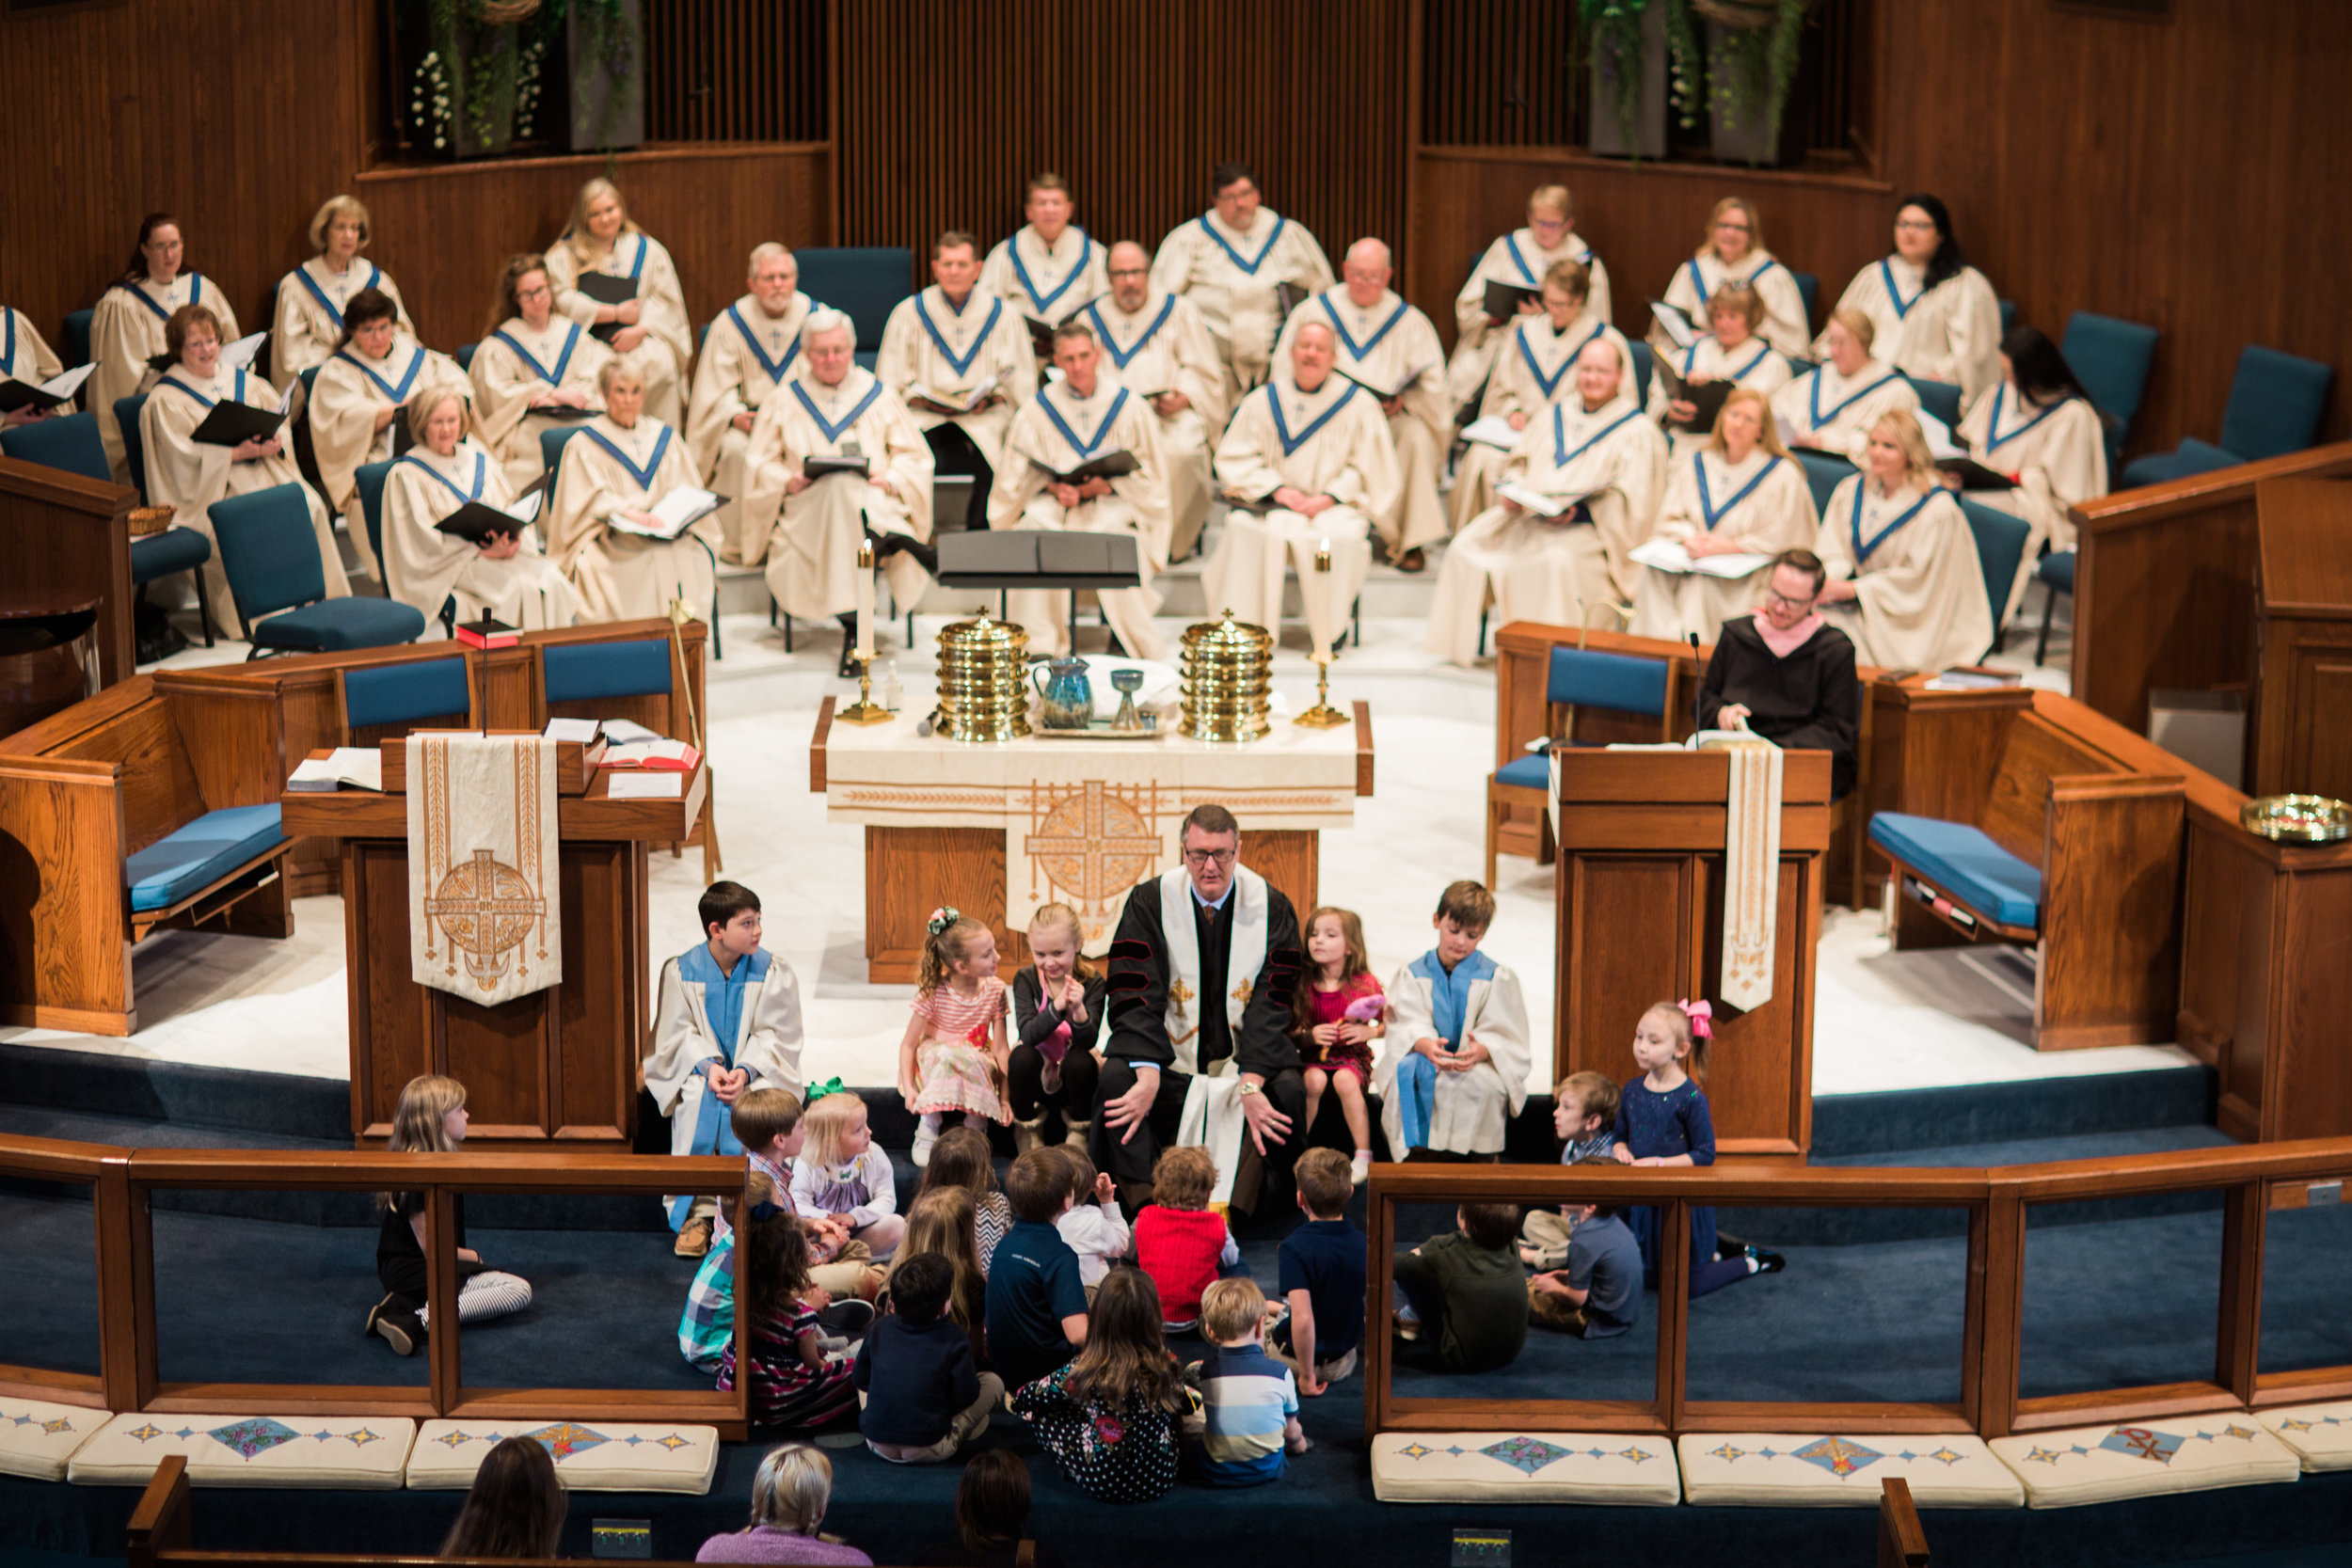 Our two SANCTUARY services include United Methodist liturgy, hymns, organ and piano accompaniment, prayer, and scripture, with communion on the first Sunday of the month.   The message is provided by Dr. Greg Davis, Senior Pastor.